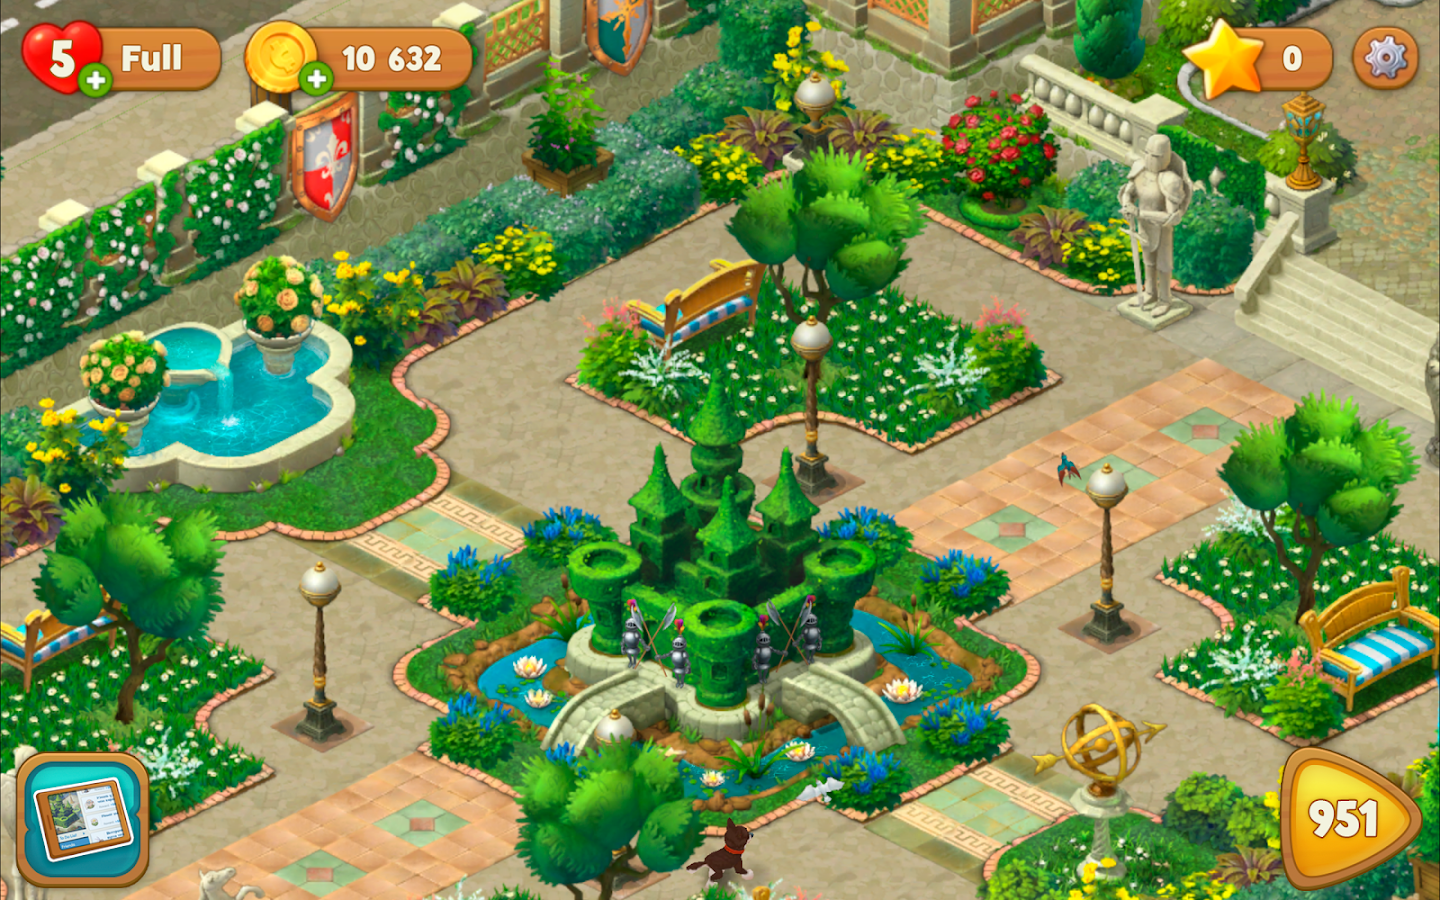 Gardenscapes - New Acres Screenshot 19